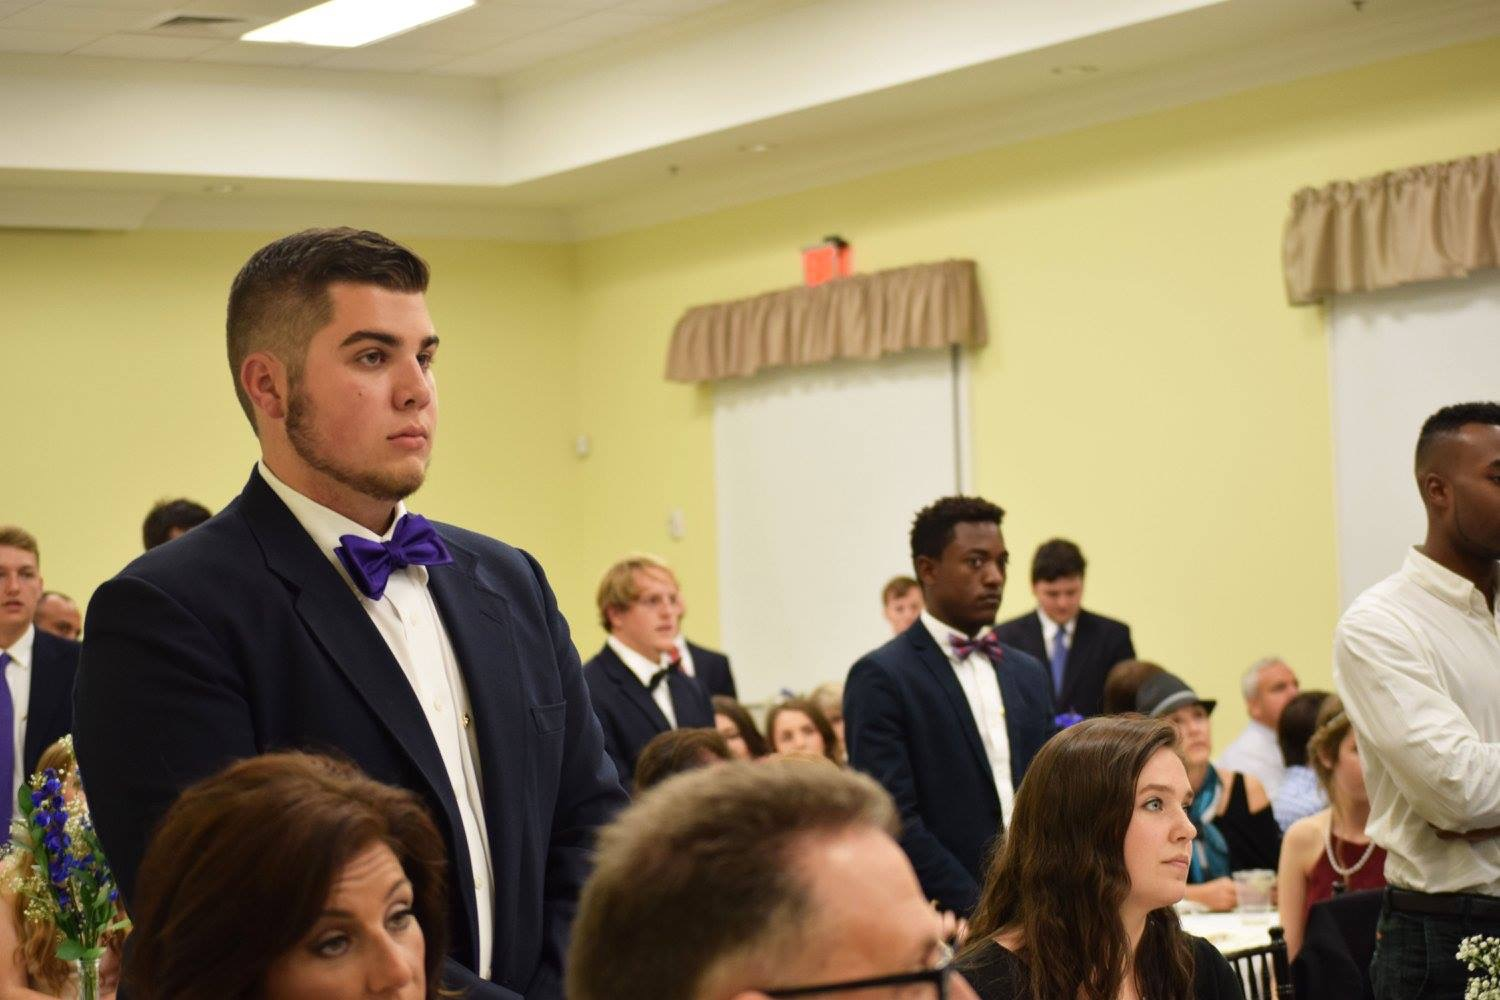 Brothers stand to be recognized during the banquet